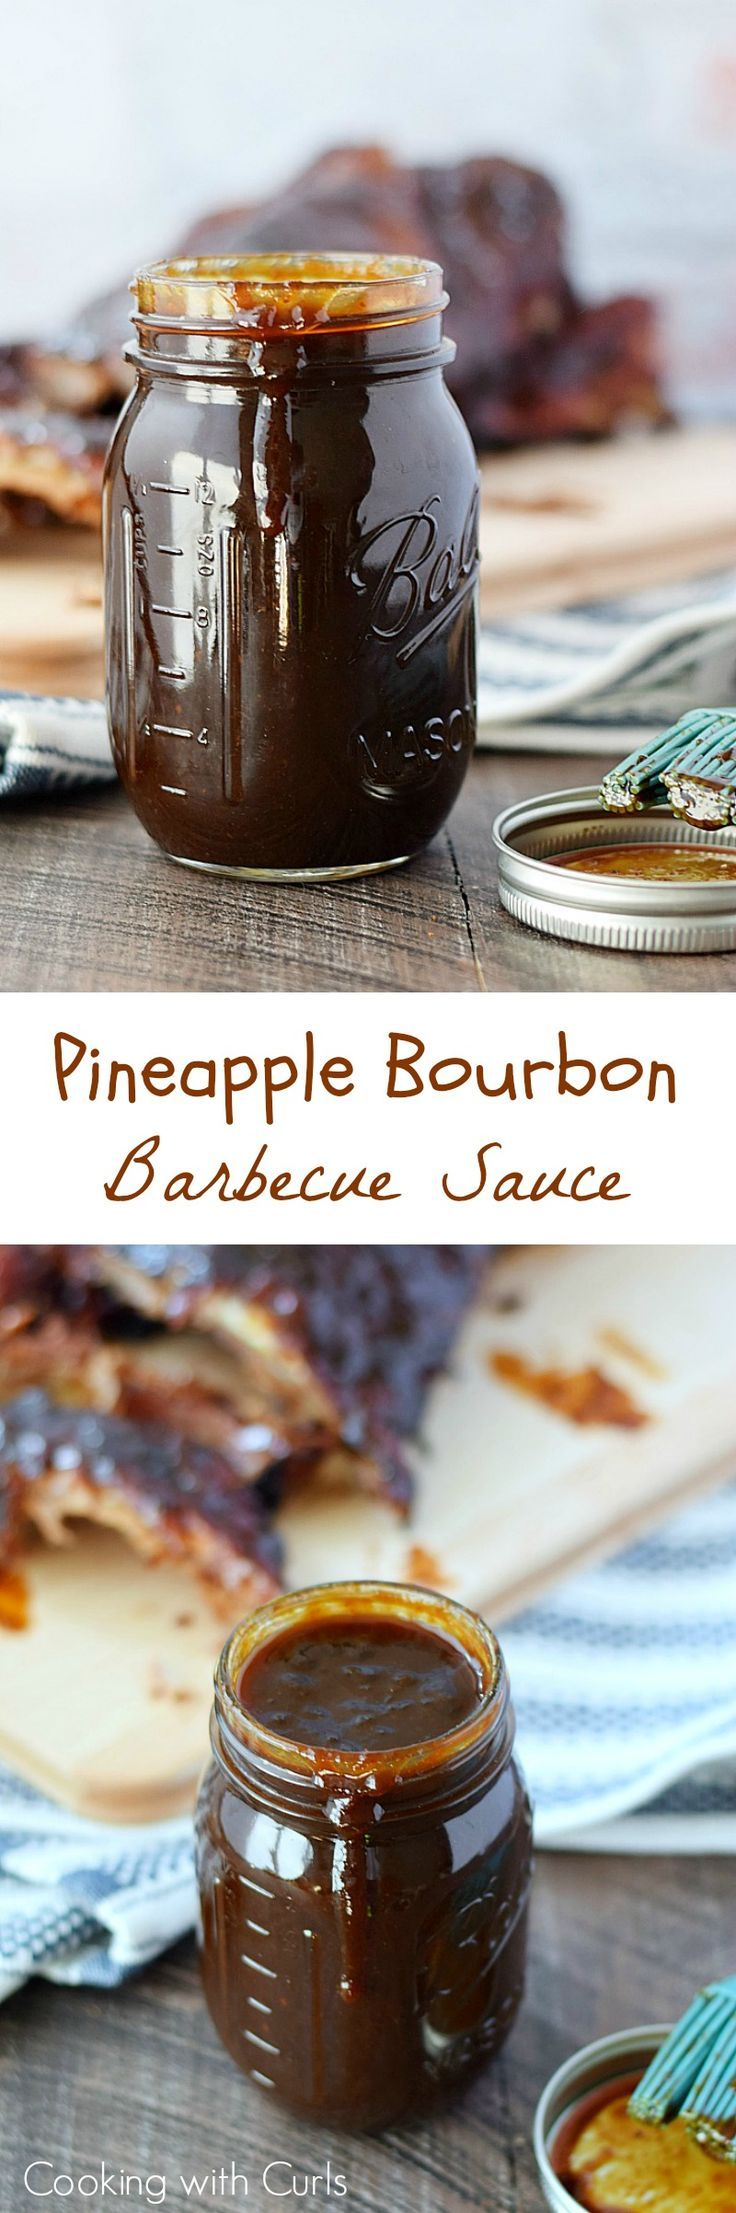 Kick up your next BBQ with this sweet and spicy Pineapple Bourbon Barbecue Sauce that packs a punch